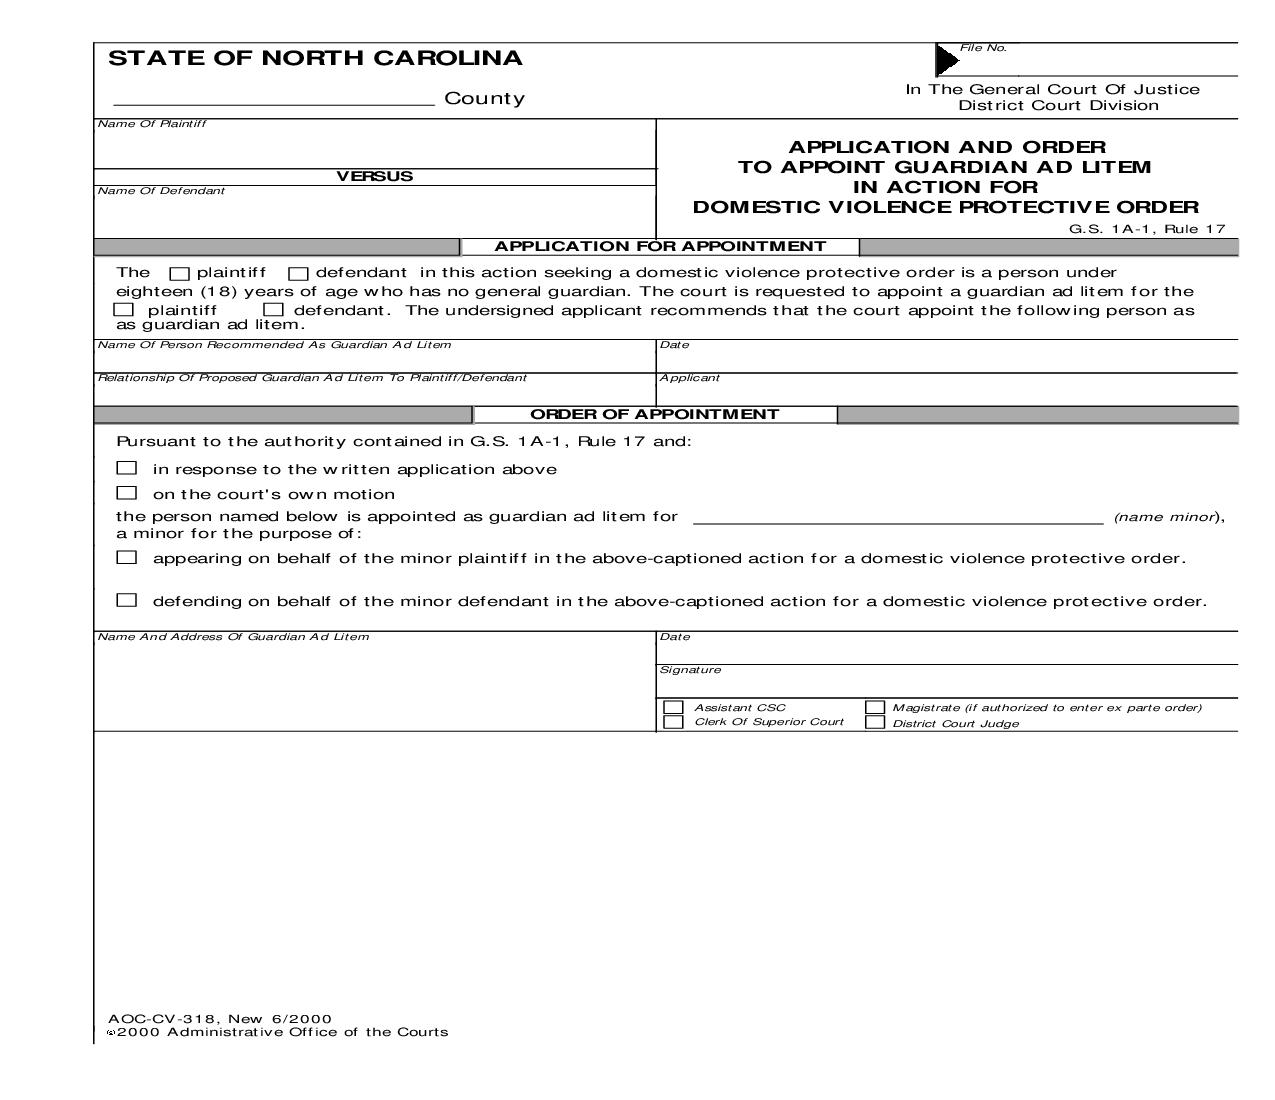 Application And Order To Appoint Guardian Ad Litem In Action For Domestic Violence Protective Order {CV-318} | Pdf Fpdf Doc Docx | North Carolina